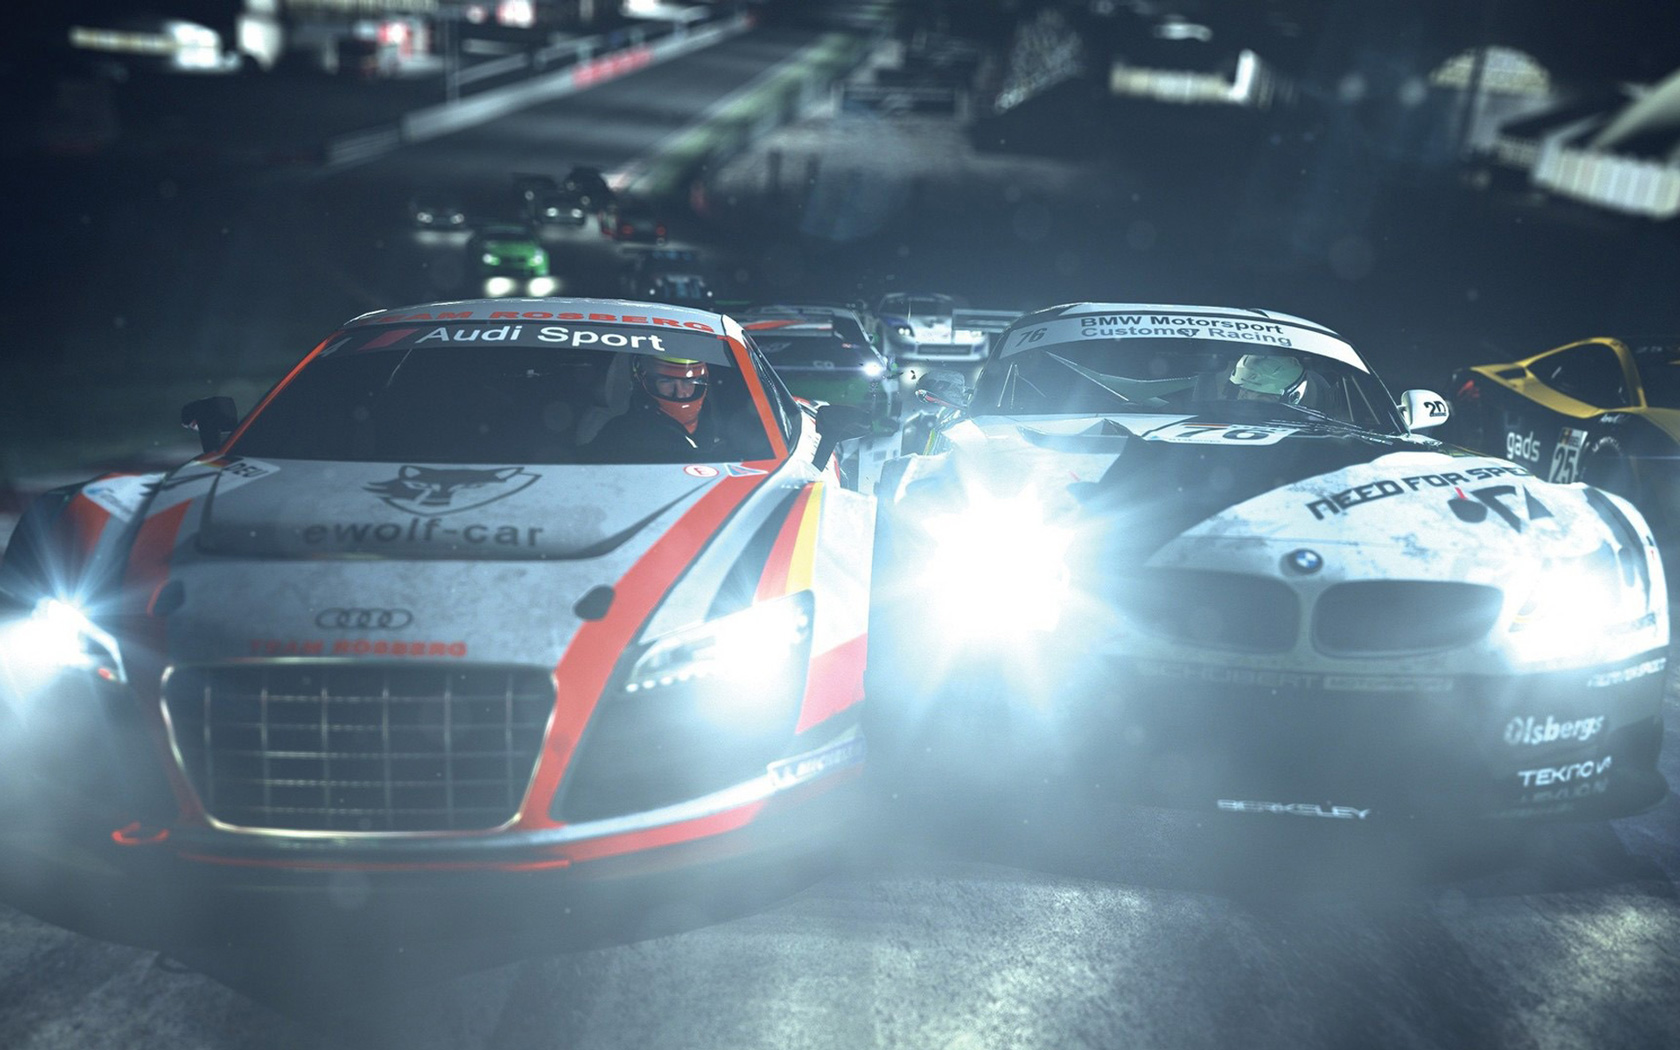 Need for Speed: Shift 2 Unleashed Wallpaper in 1680x1050